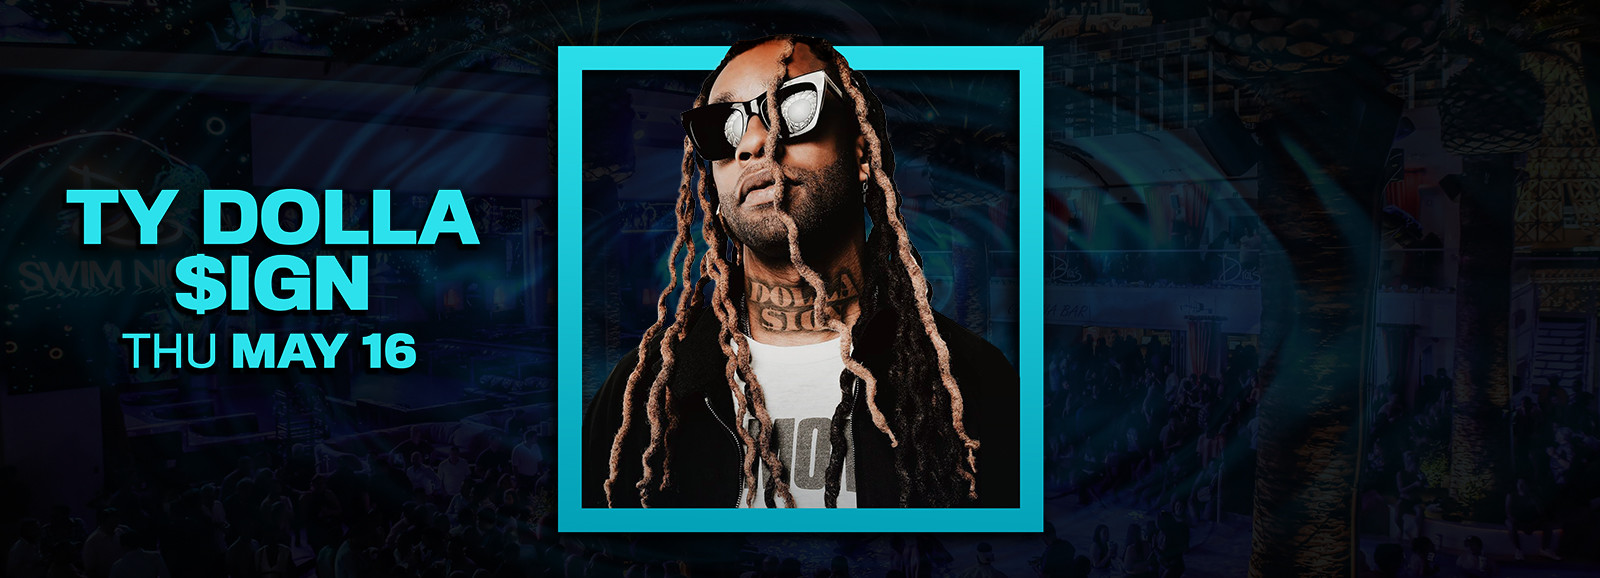 Thu May 16 TY DOLLA IGN Get Tickets Bottle Service